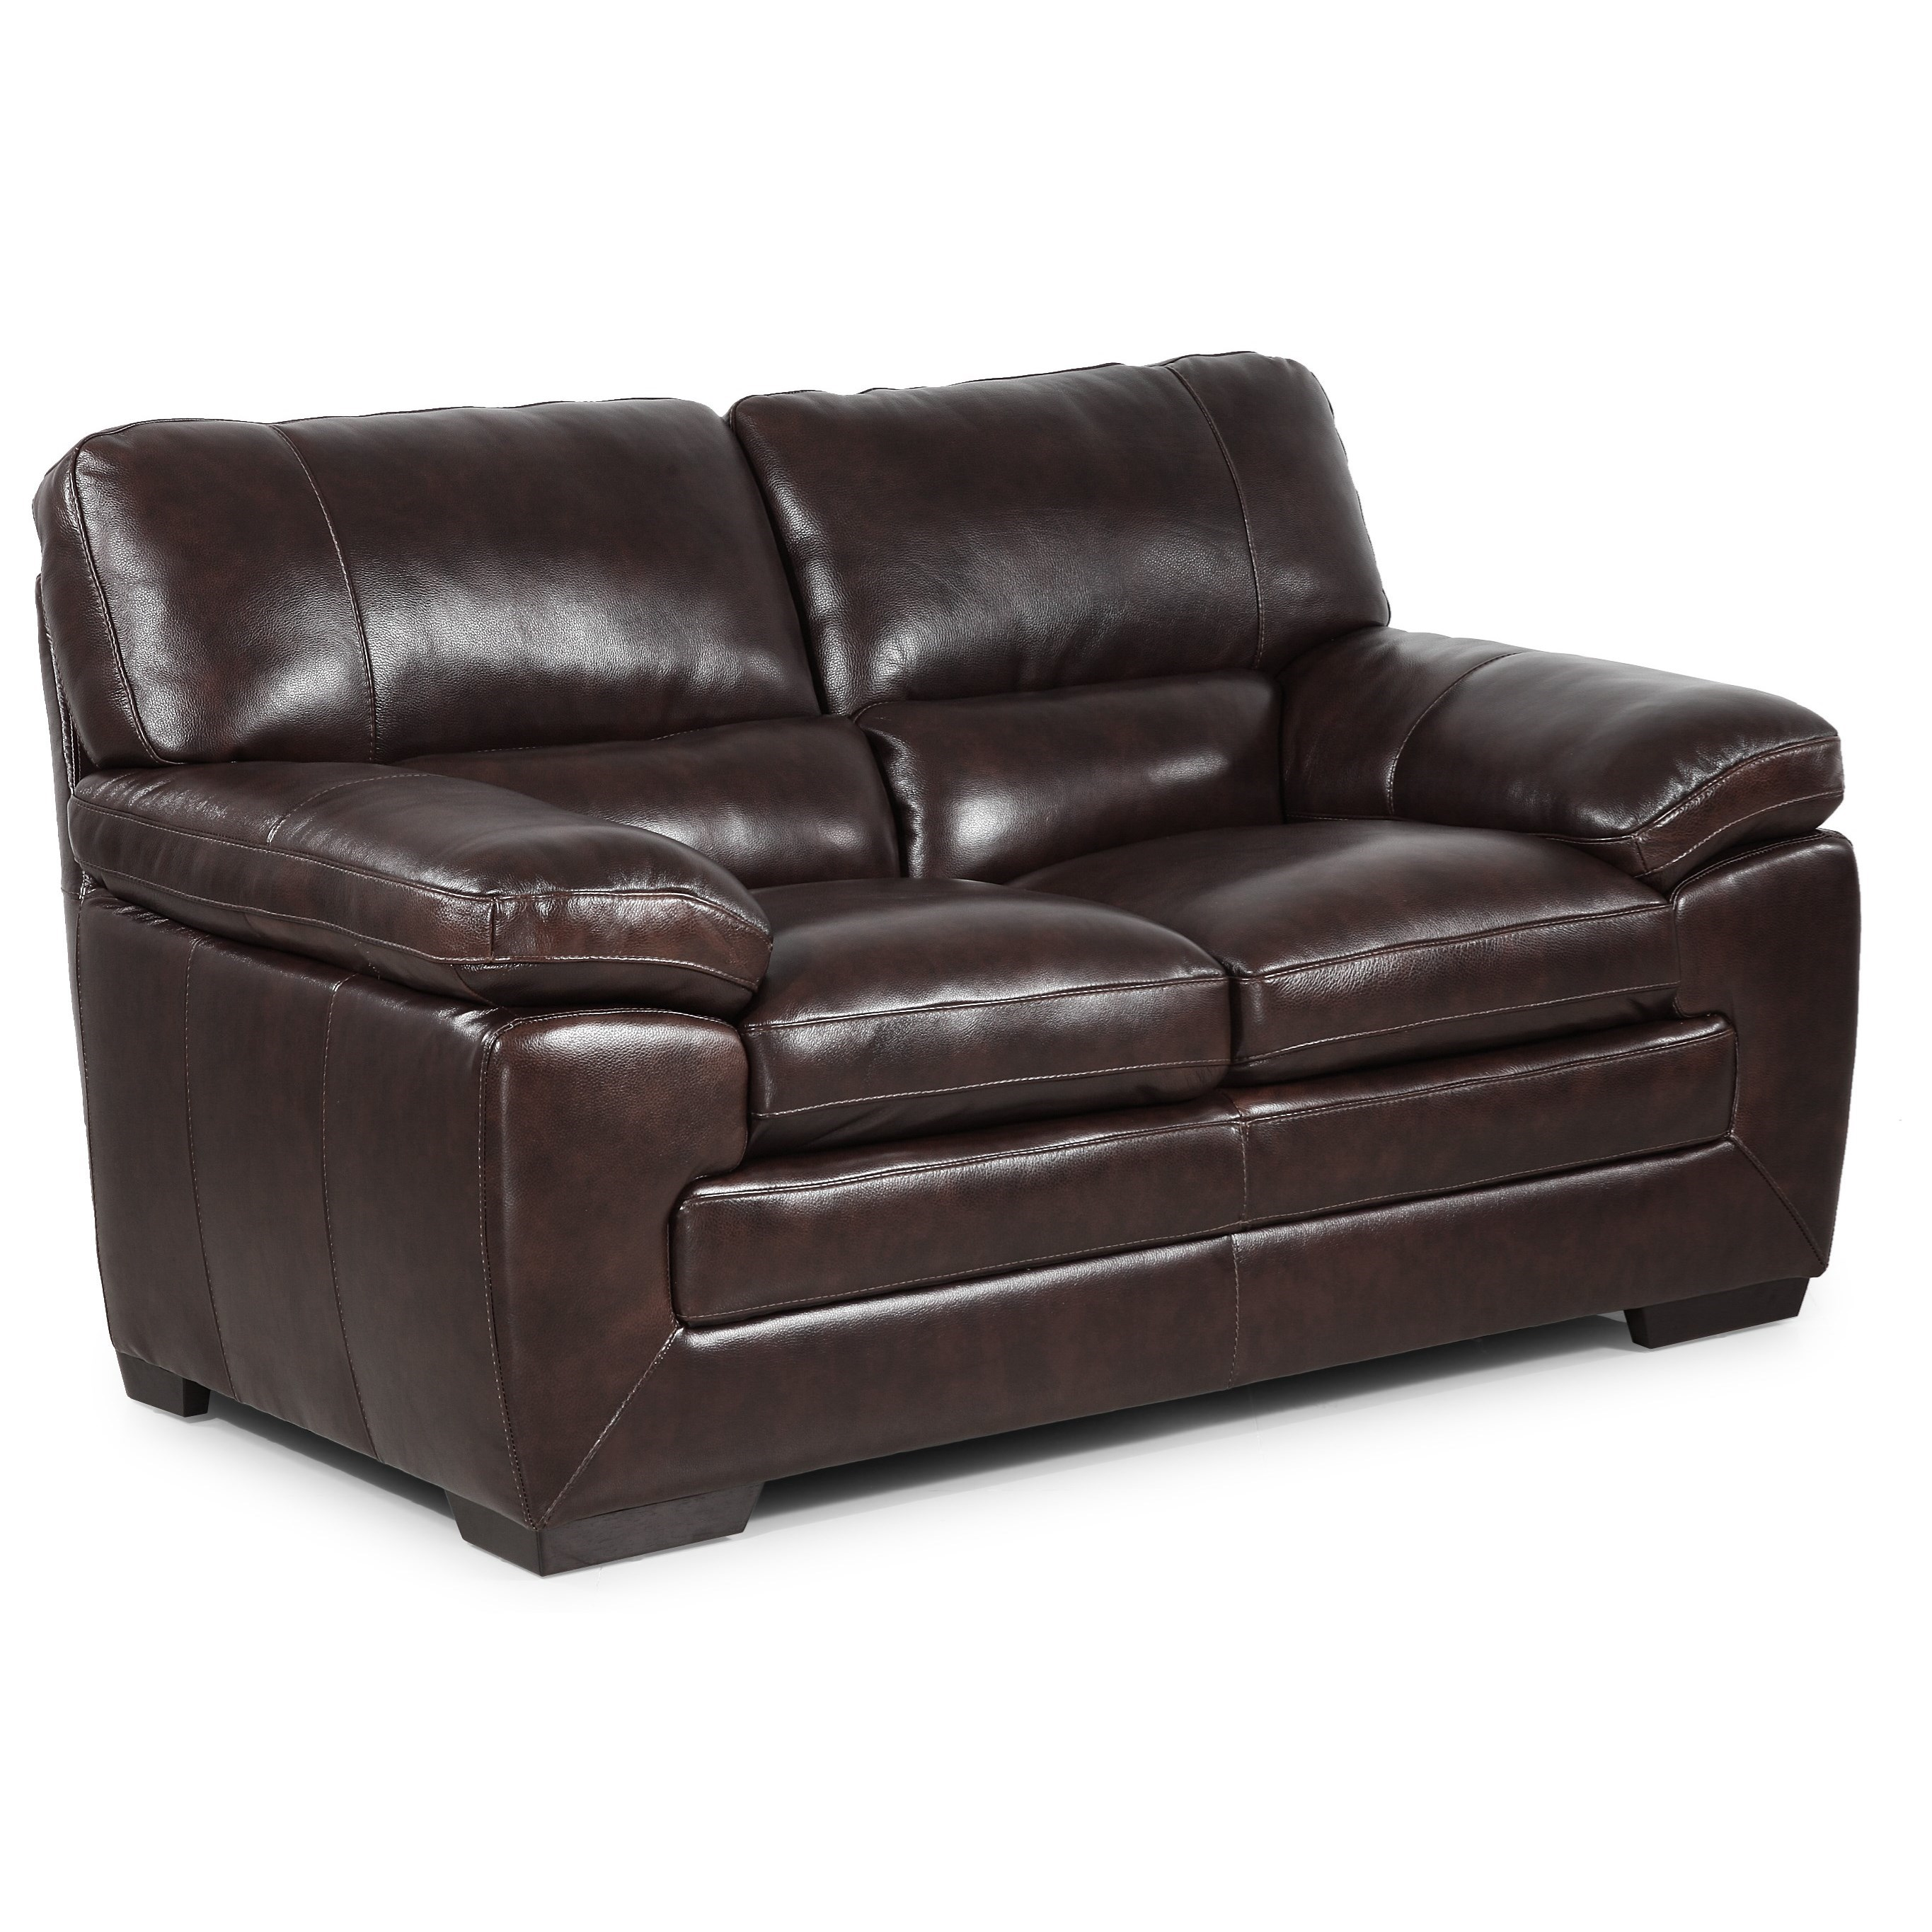 Simon Li Biscayne Longhorn Black Oak Leather Loveseat Great